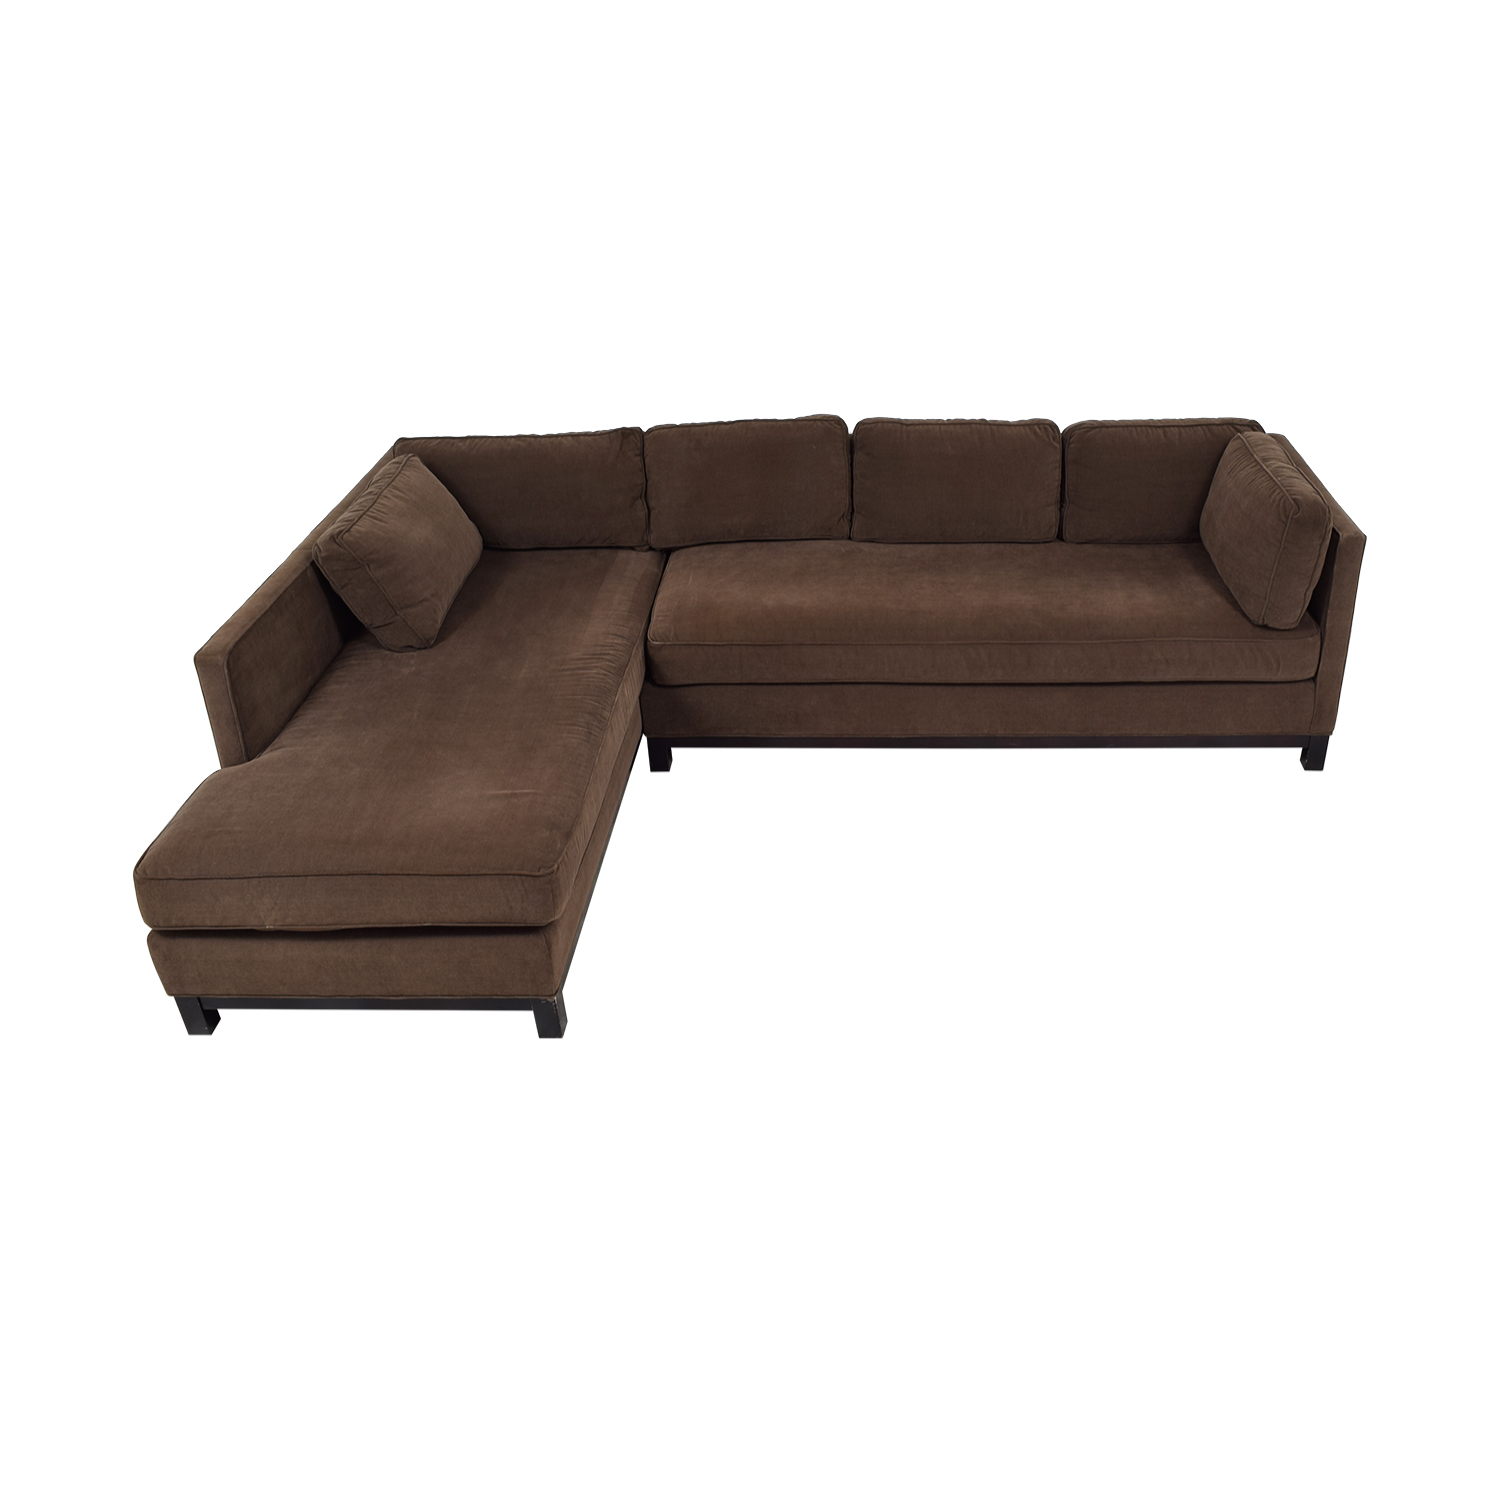 Mitchell Gold + Bob Williams Mitchell Gold + Bob Williams Chocolate Microsuede Chaise Sectional nj